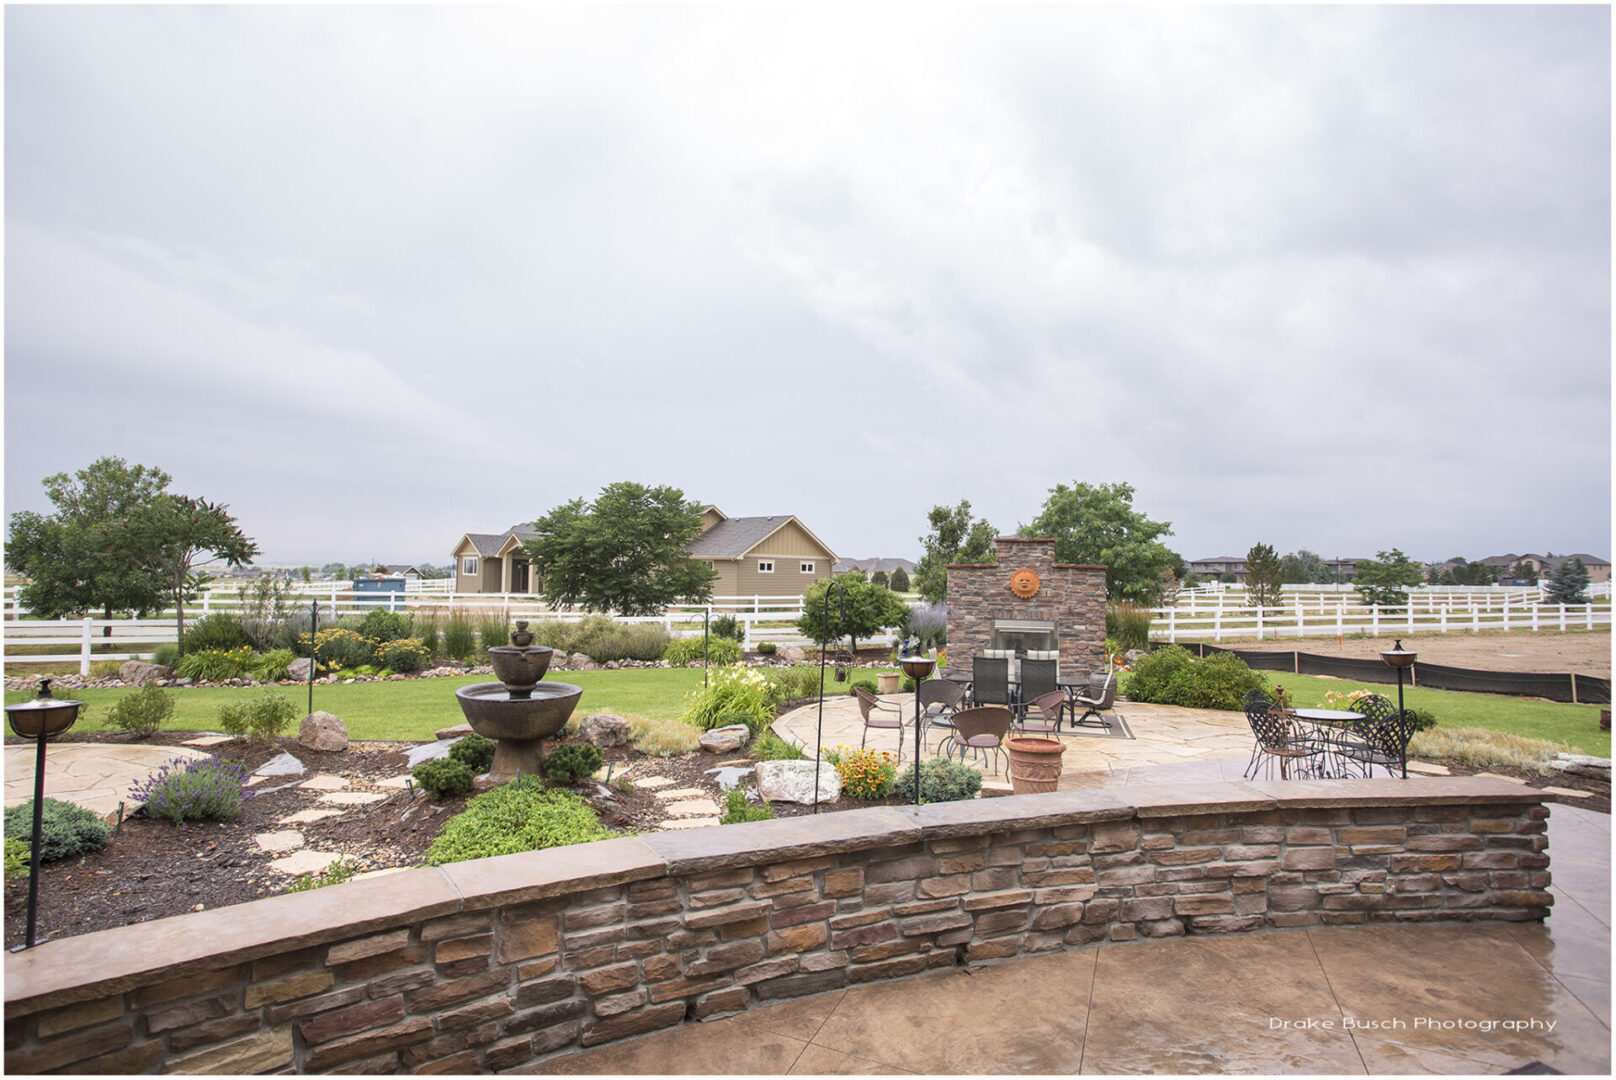 patio of a house with view of landscaped yard